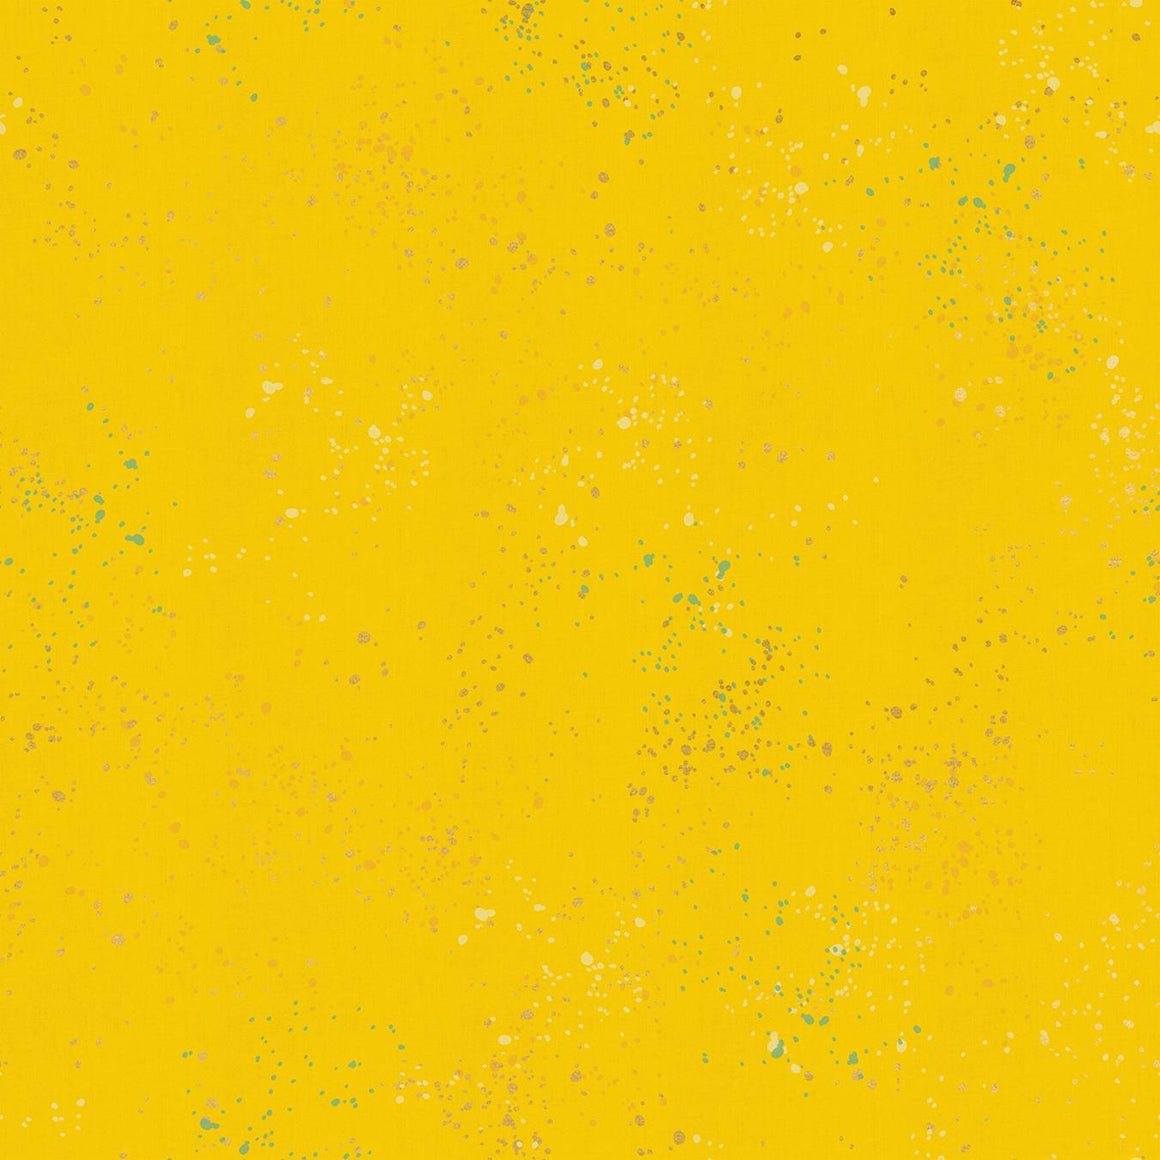 RS5027 71M Speckled Metallic Yellow